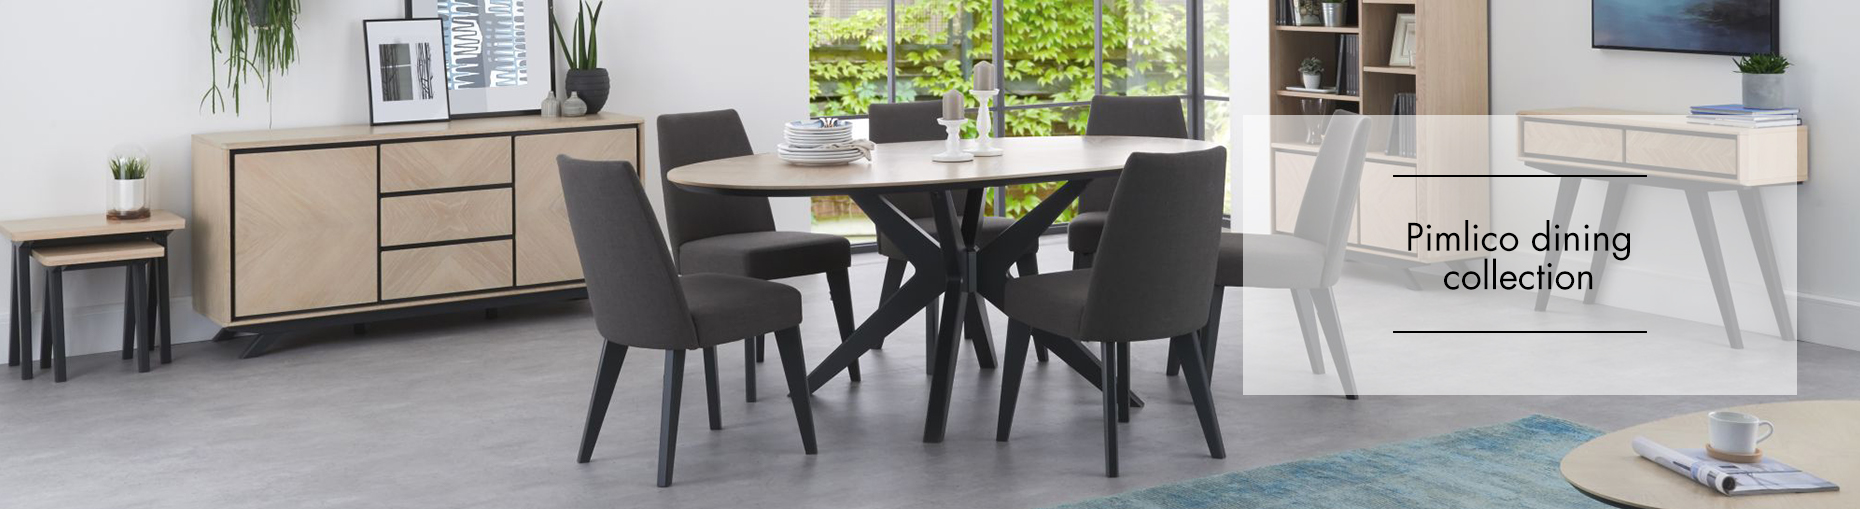 Pimlico Dining Collection at Forrest Furnishing